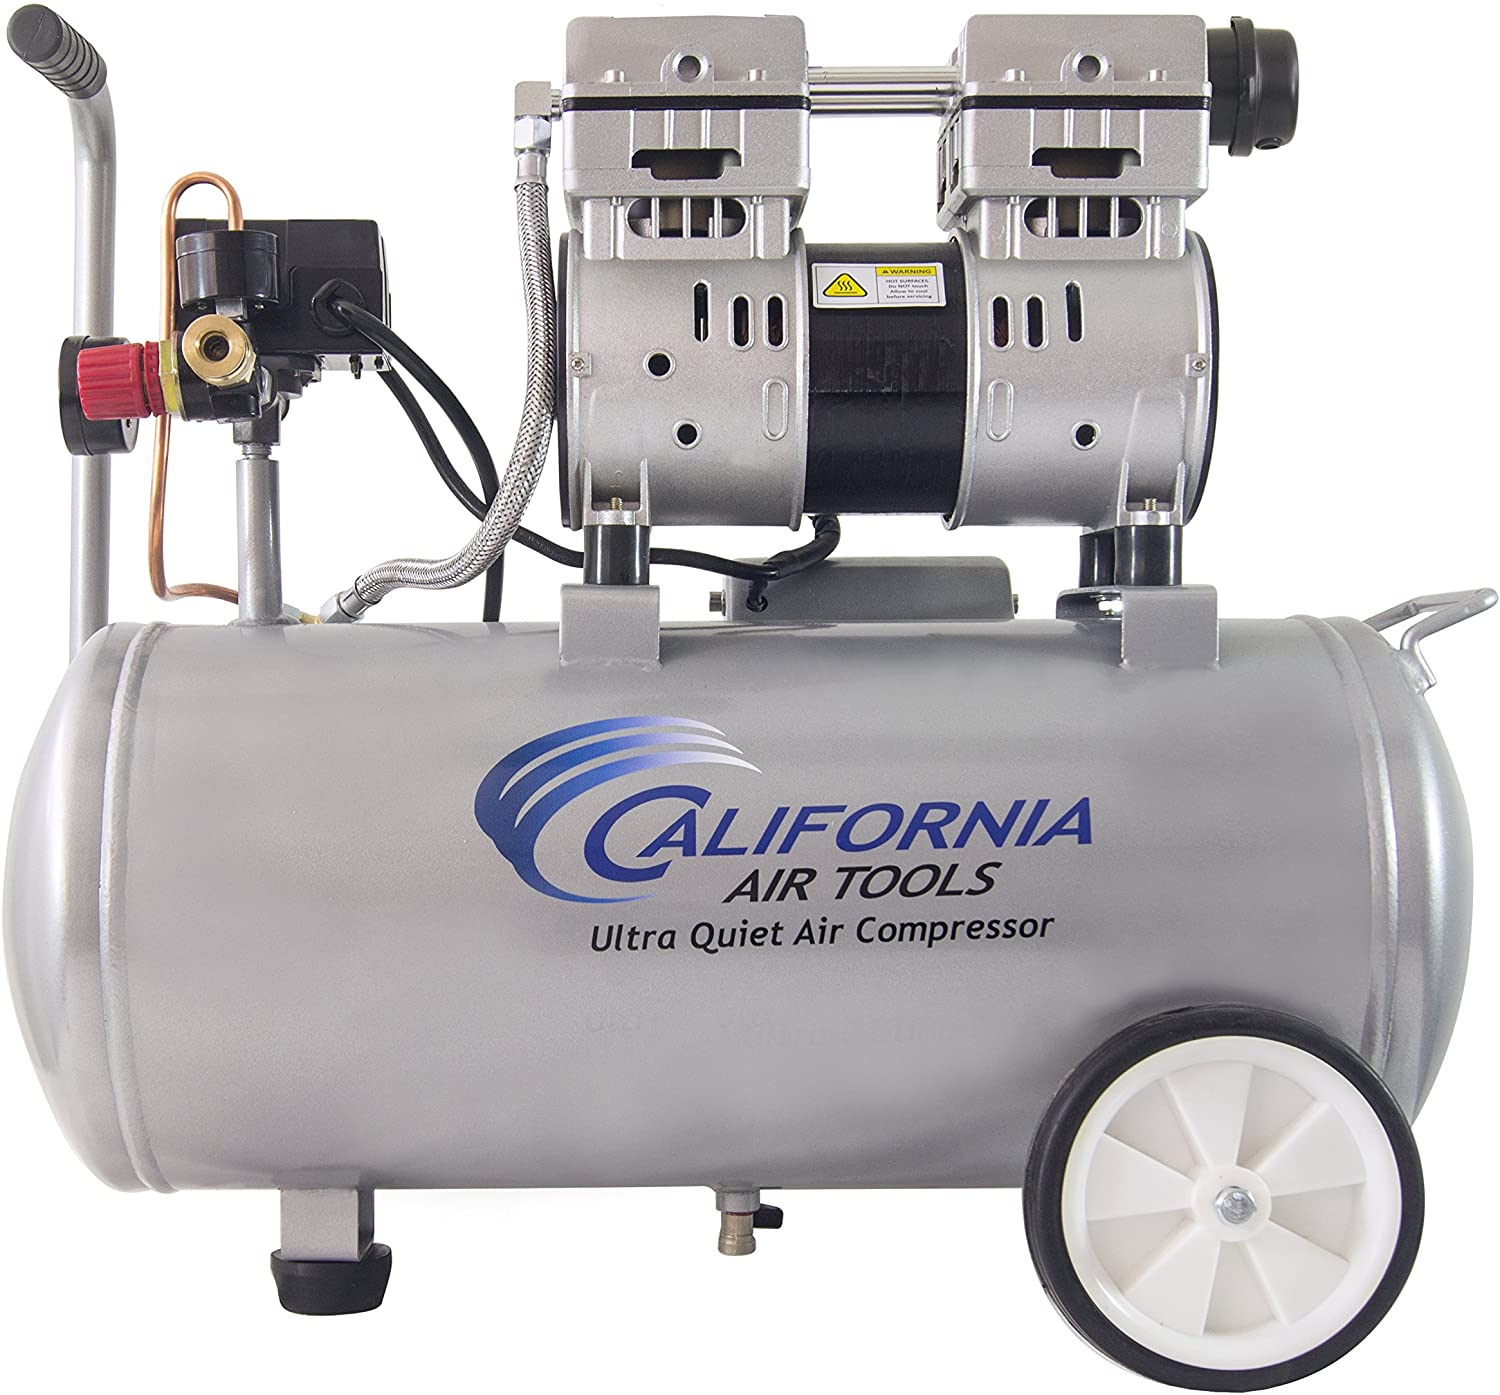 California-Air-Tools-8010-Compressor